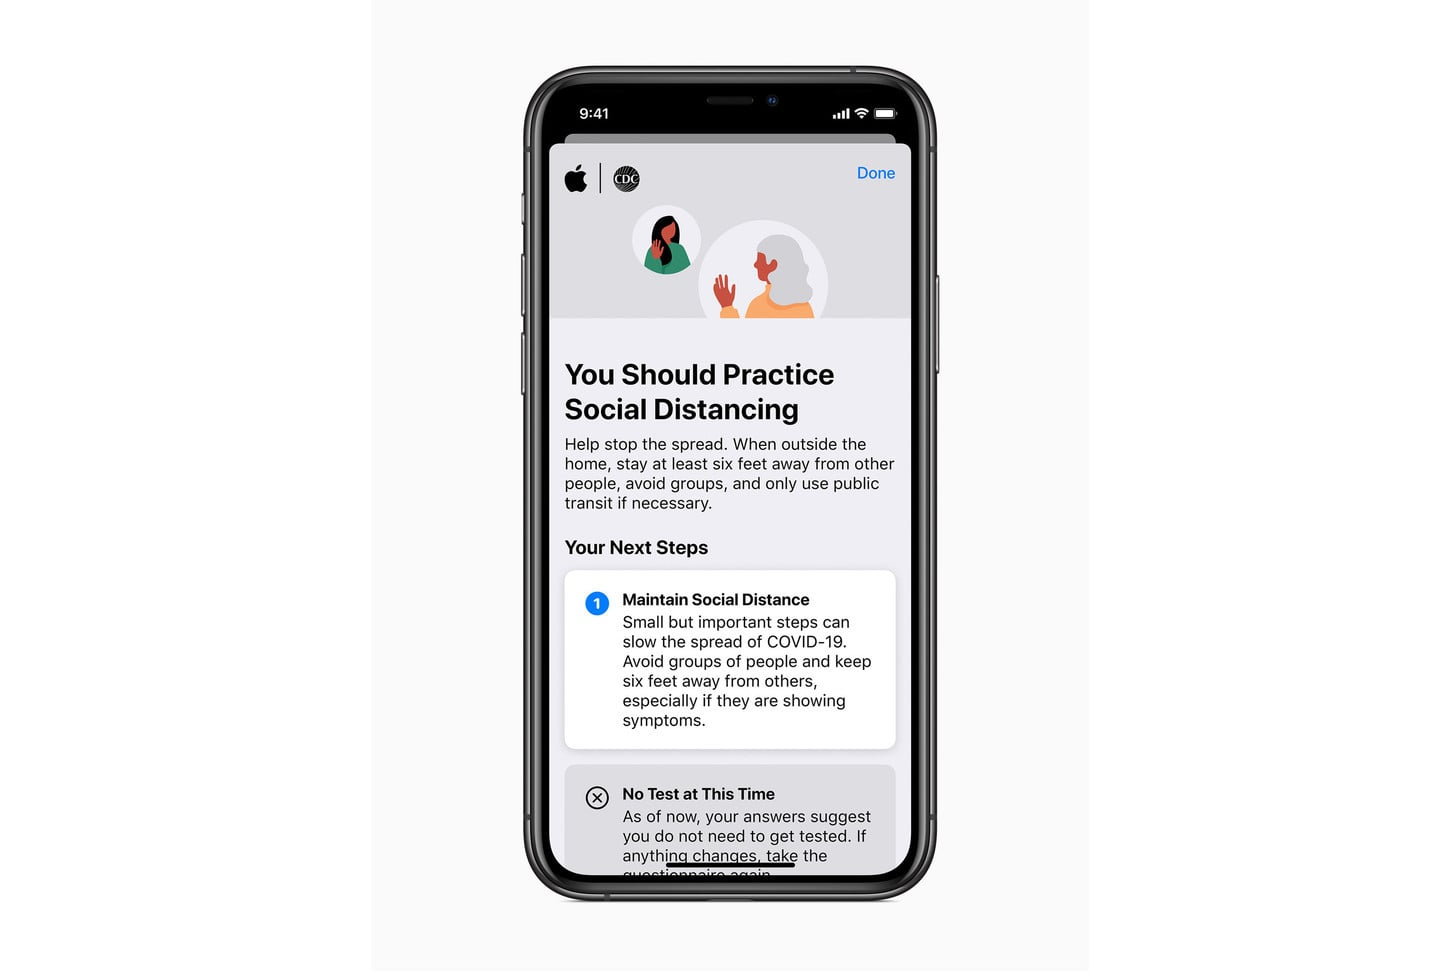 Apple Updates its COVID-19 App With Anonymous Health and Symptom Sharing